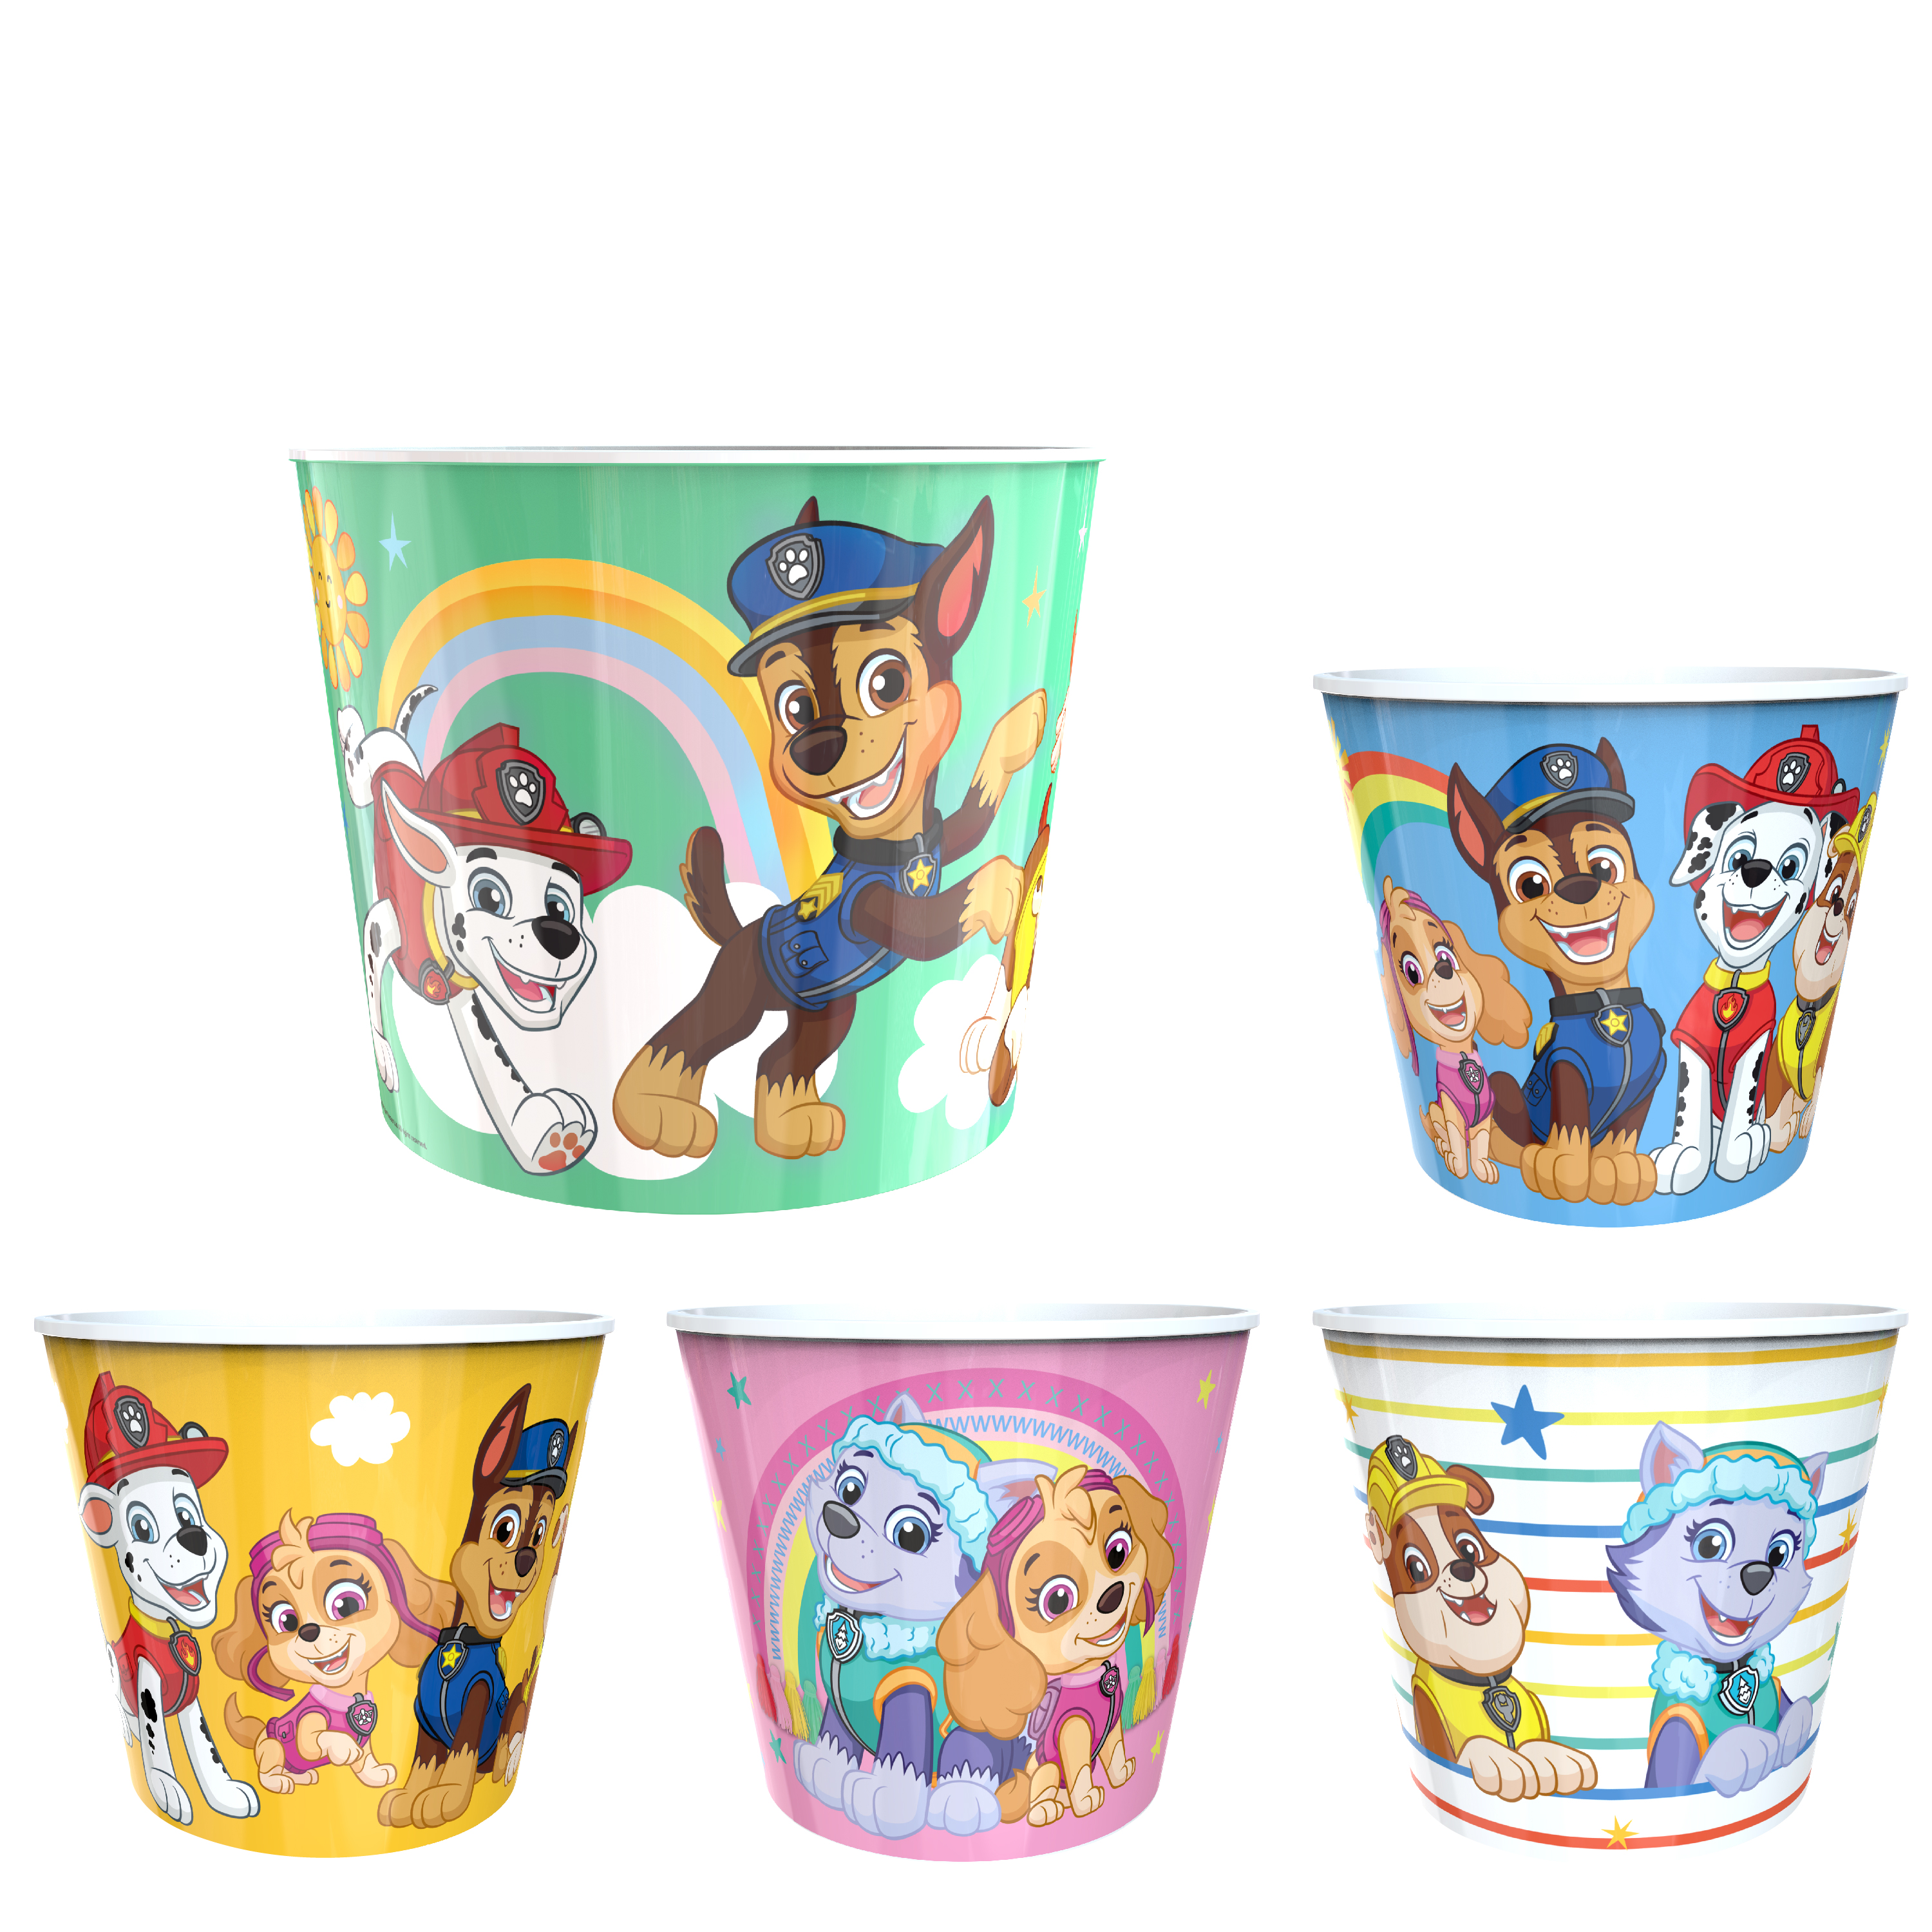 Paw Patrol Plastic Popcorn Container and Bowls, Chase, Marshall and Friends, 5-piece set image